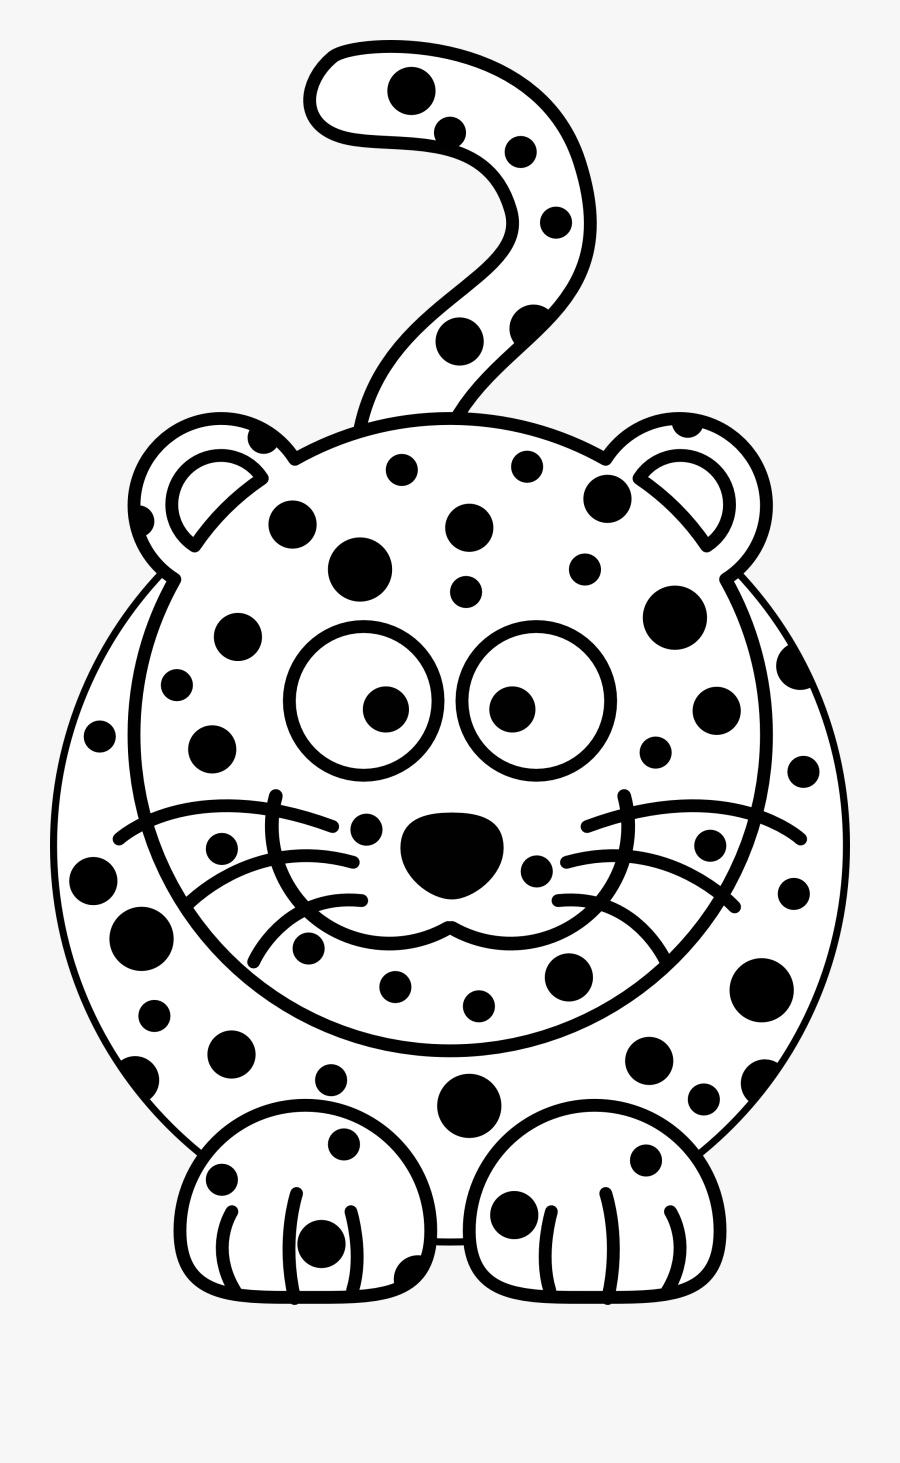 Cartoon Snow Leopard Coloring Page - Cheetah Facts For Kids, Transparent Clipart